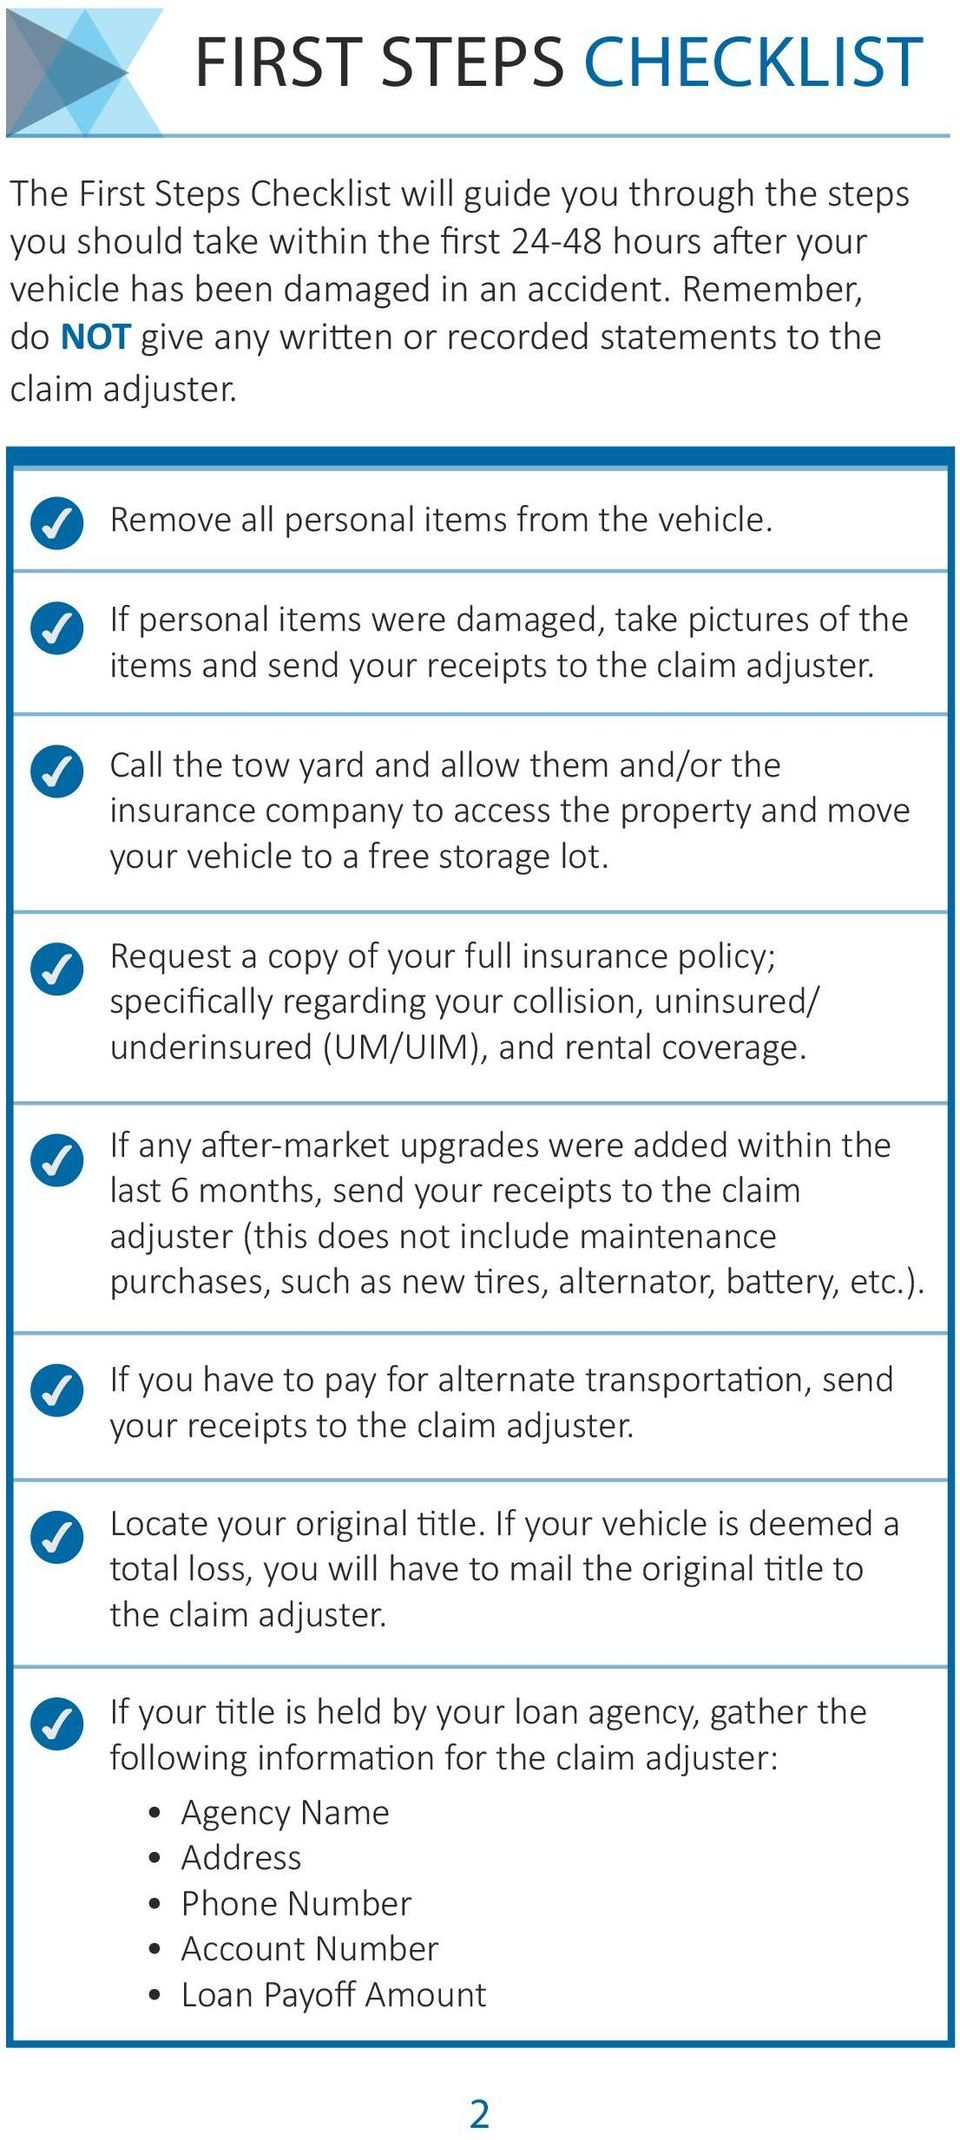 If personal items were damaged, take pictures of the items and send your receipts to the claim adjuster.